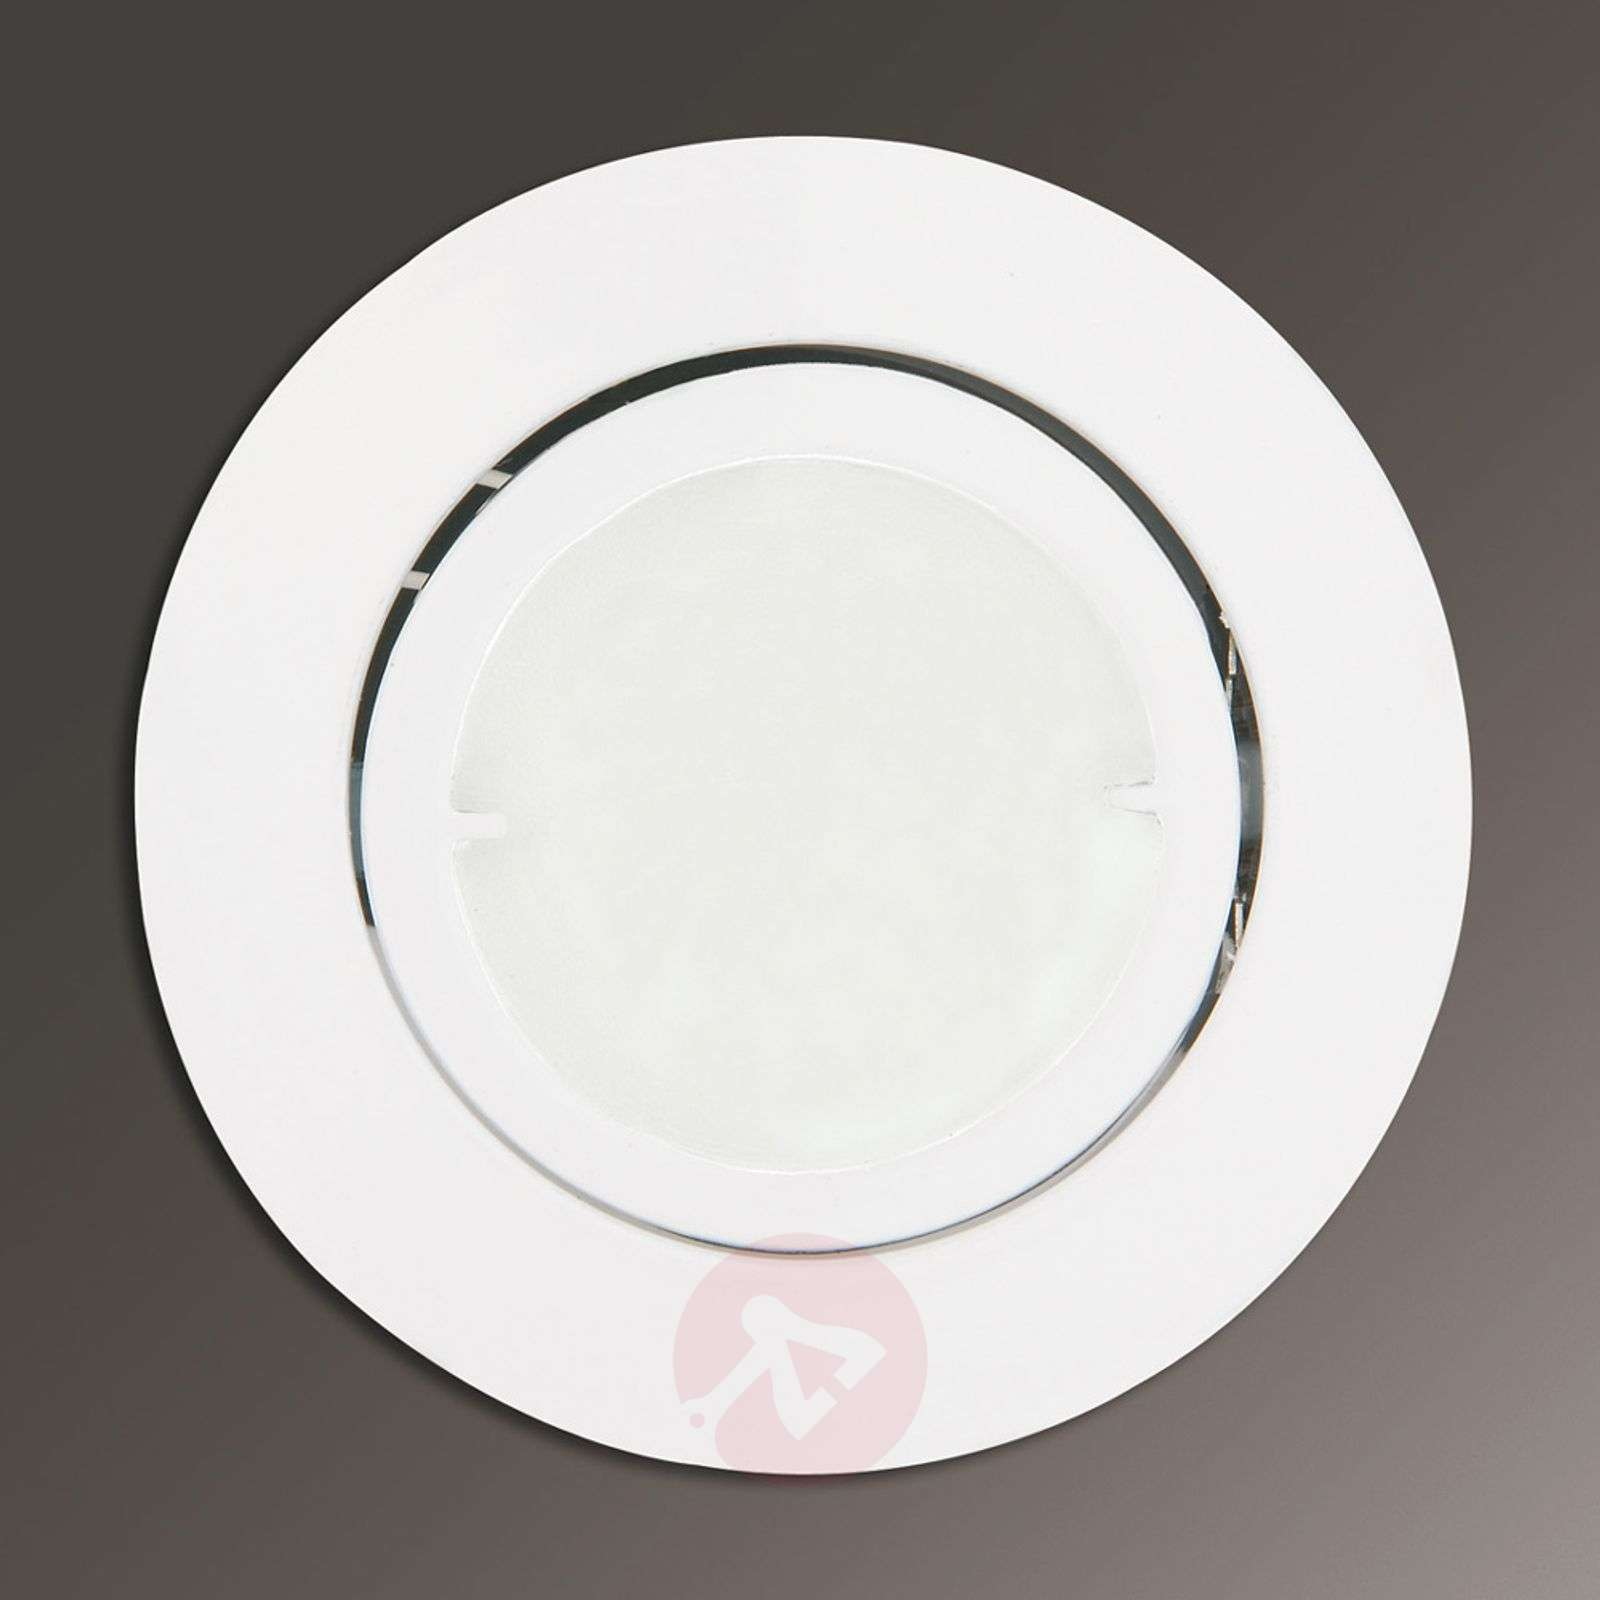 Joanie LED recessed light in white, round_1524121_1